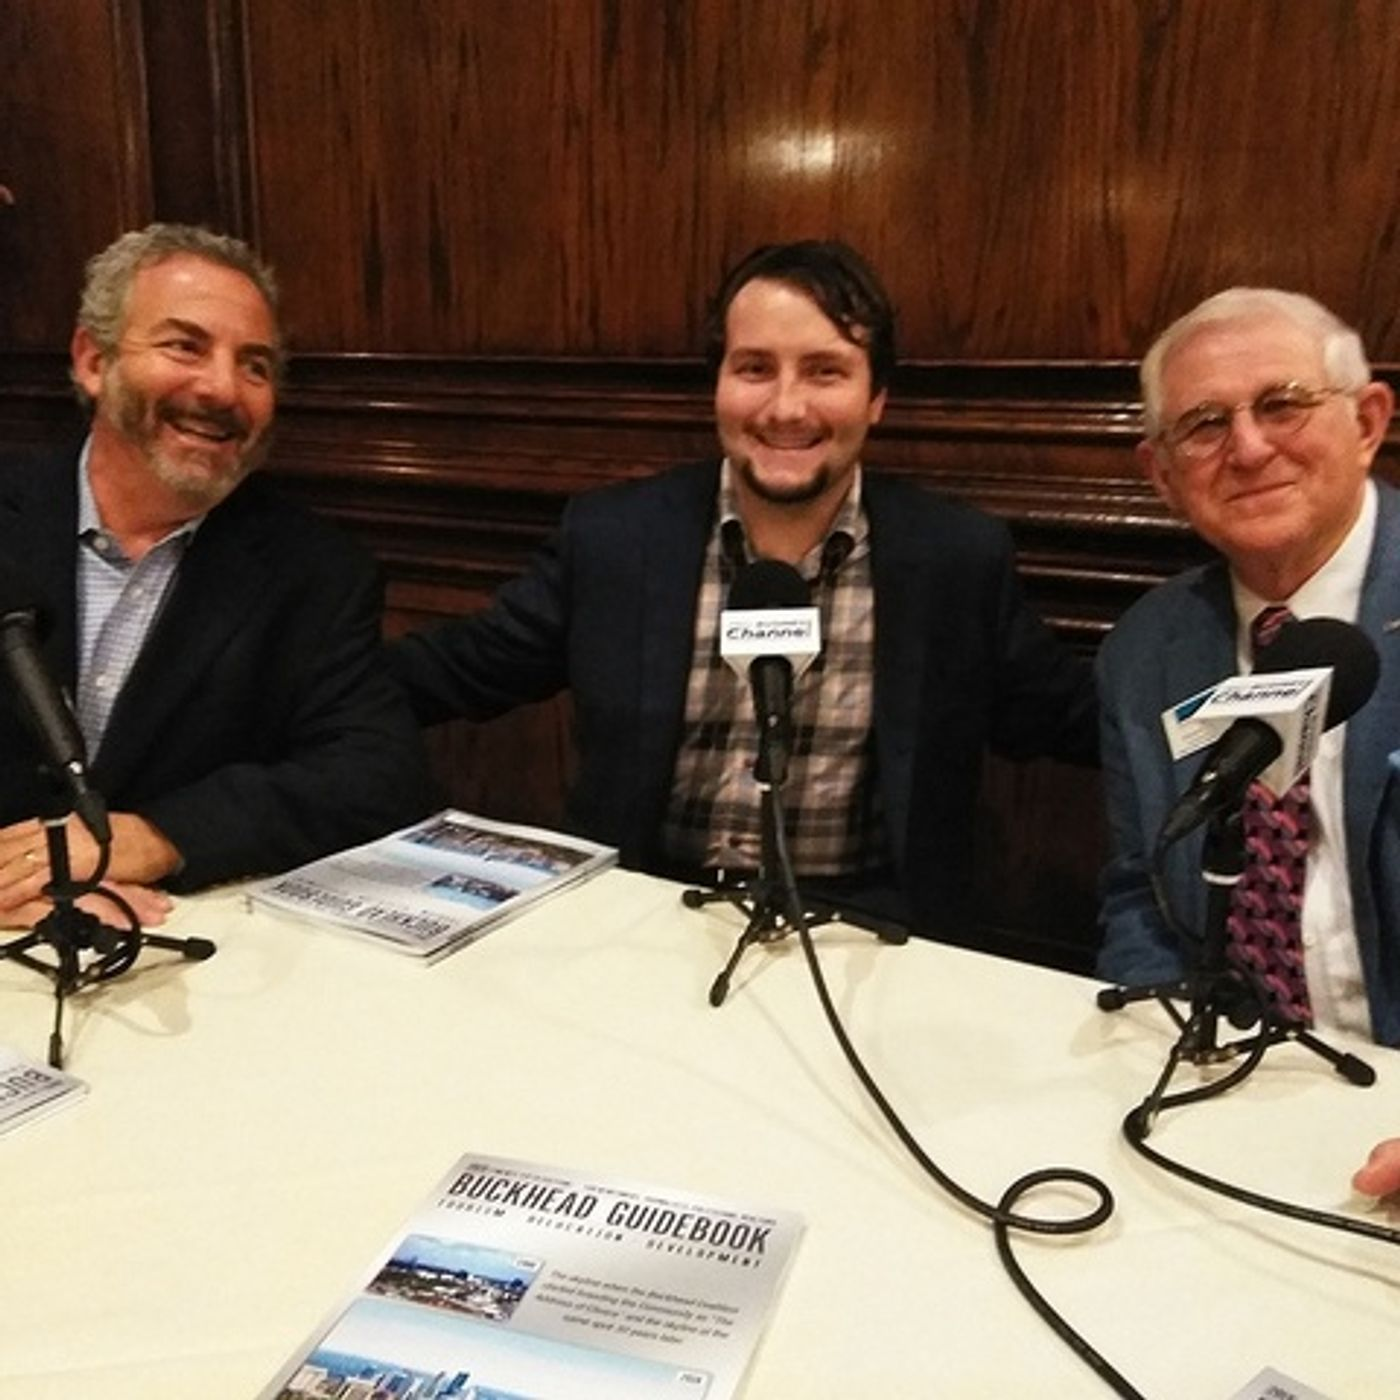 Steve and Graham Massell  Interview at BBA Breakfast on the Buckhead Business Show